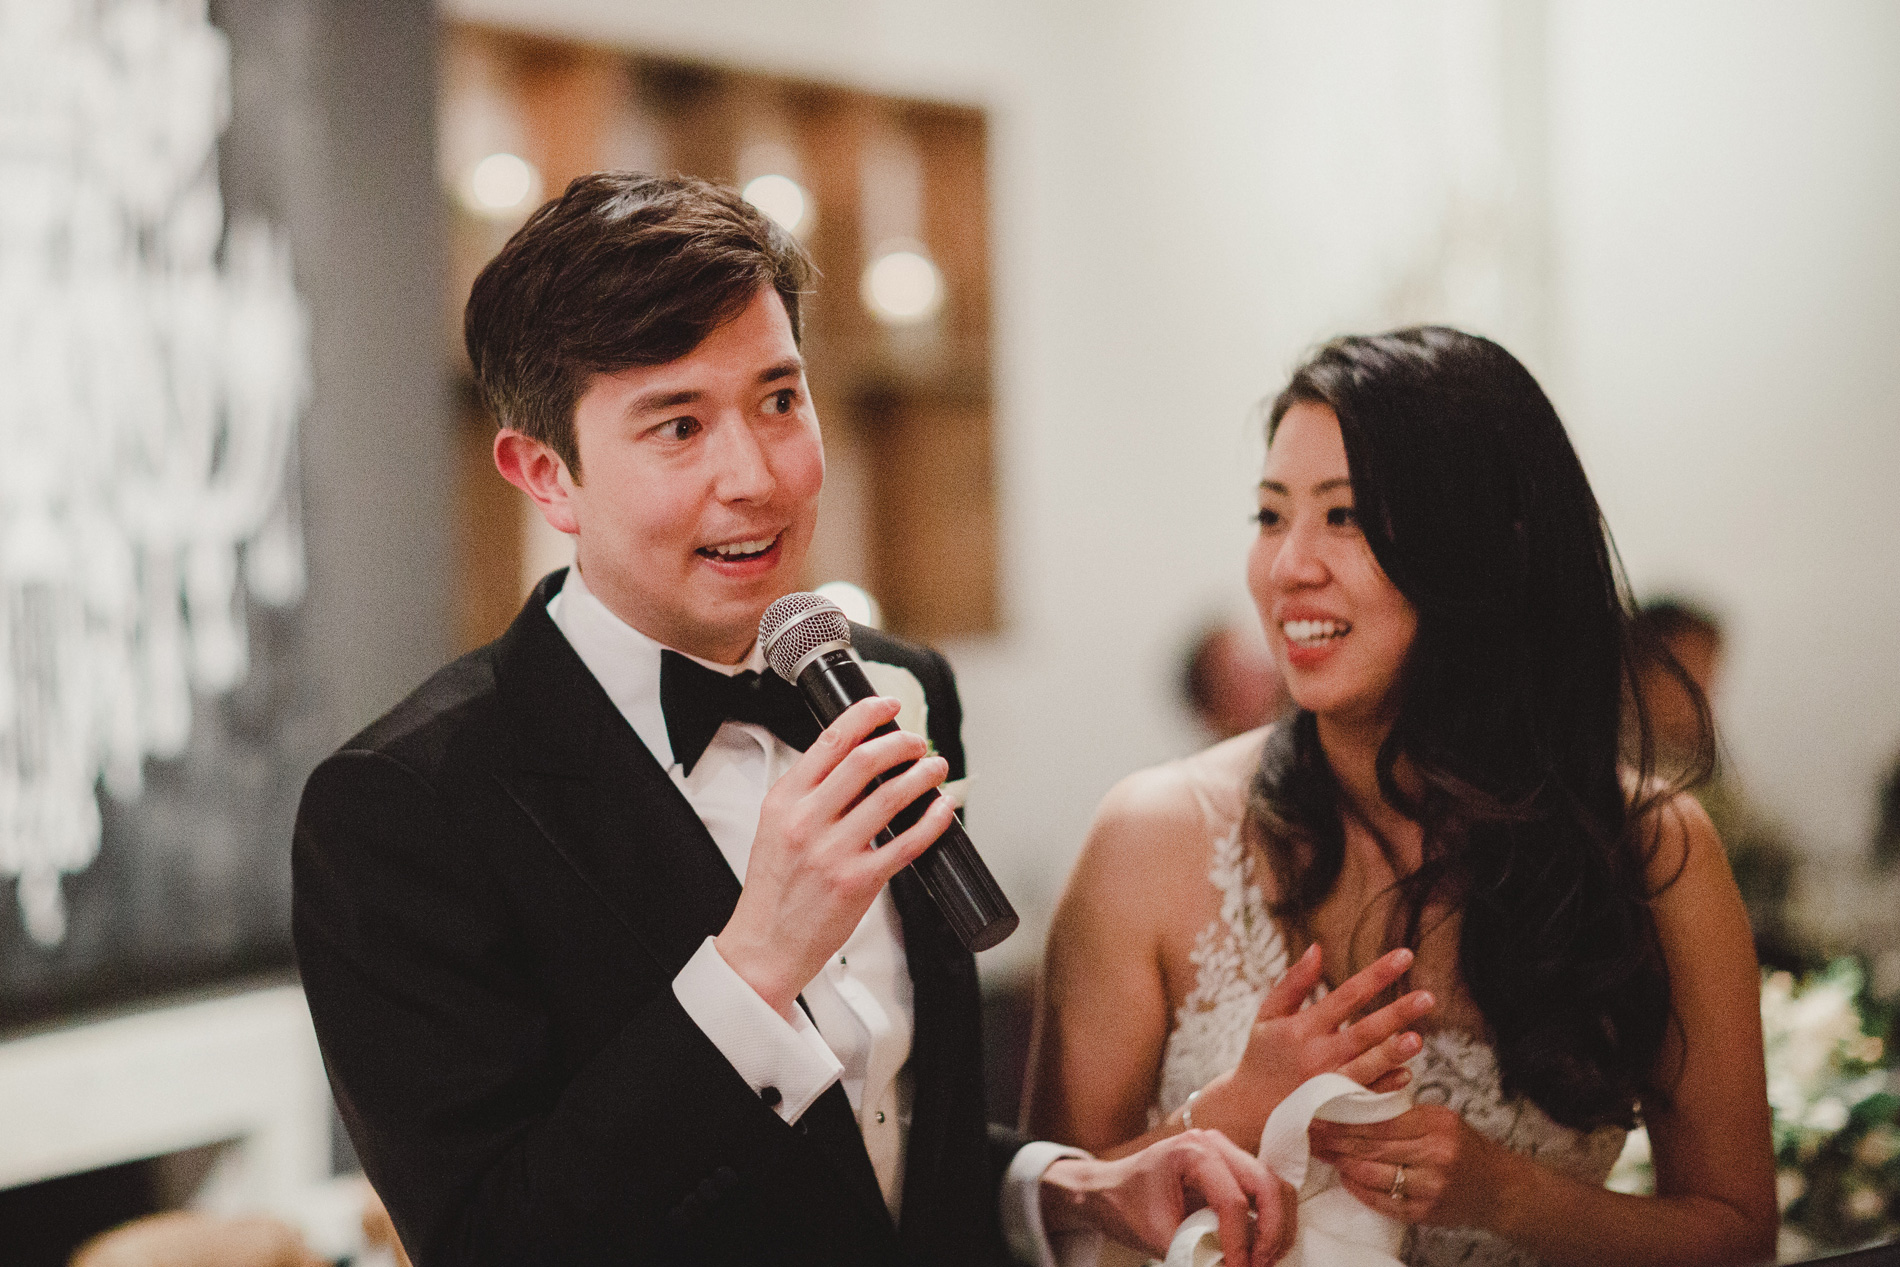 ultimate-guide-writing-delivering-great-wedding-speech-toast